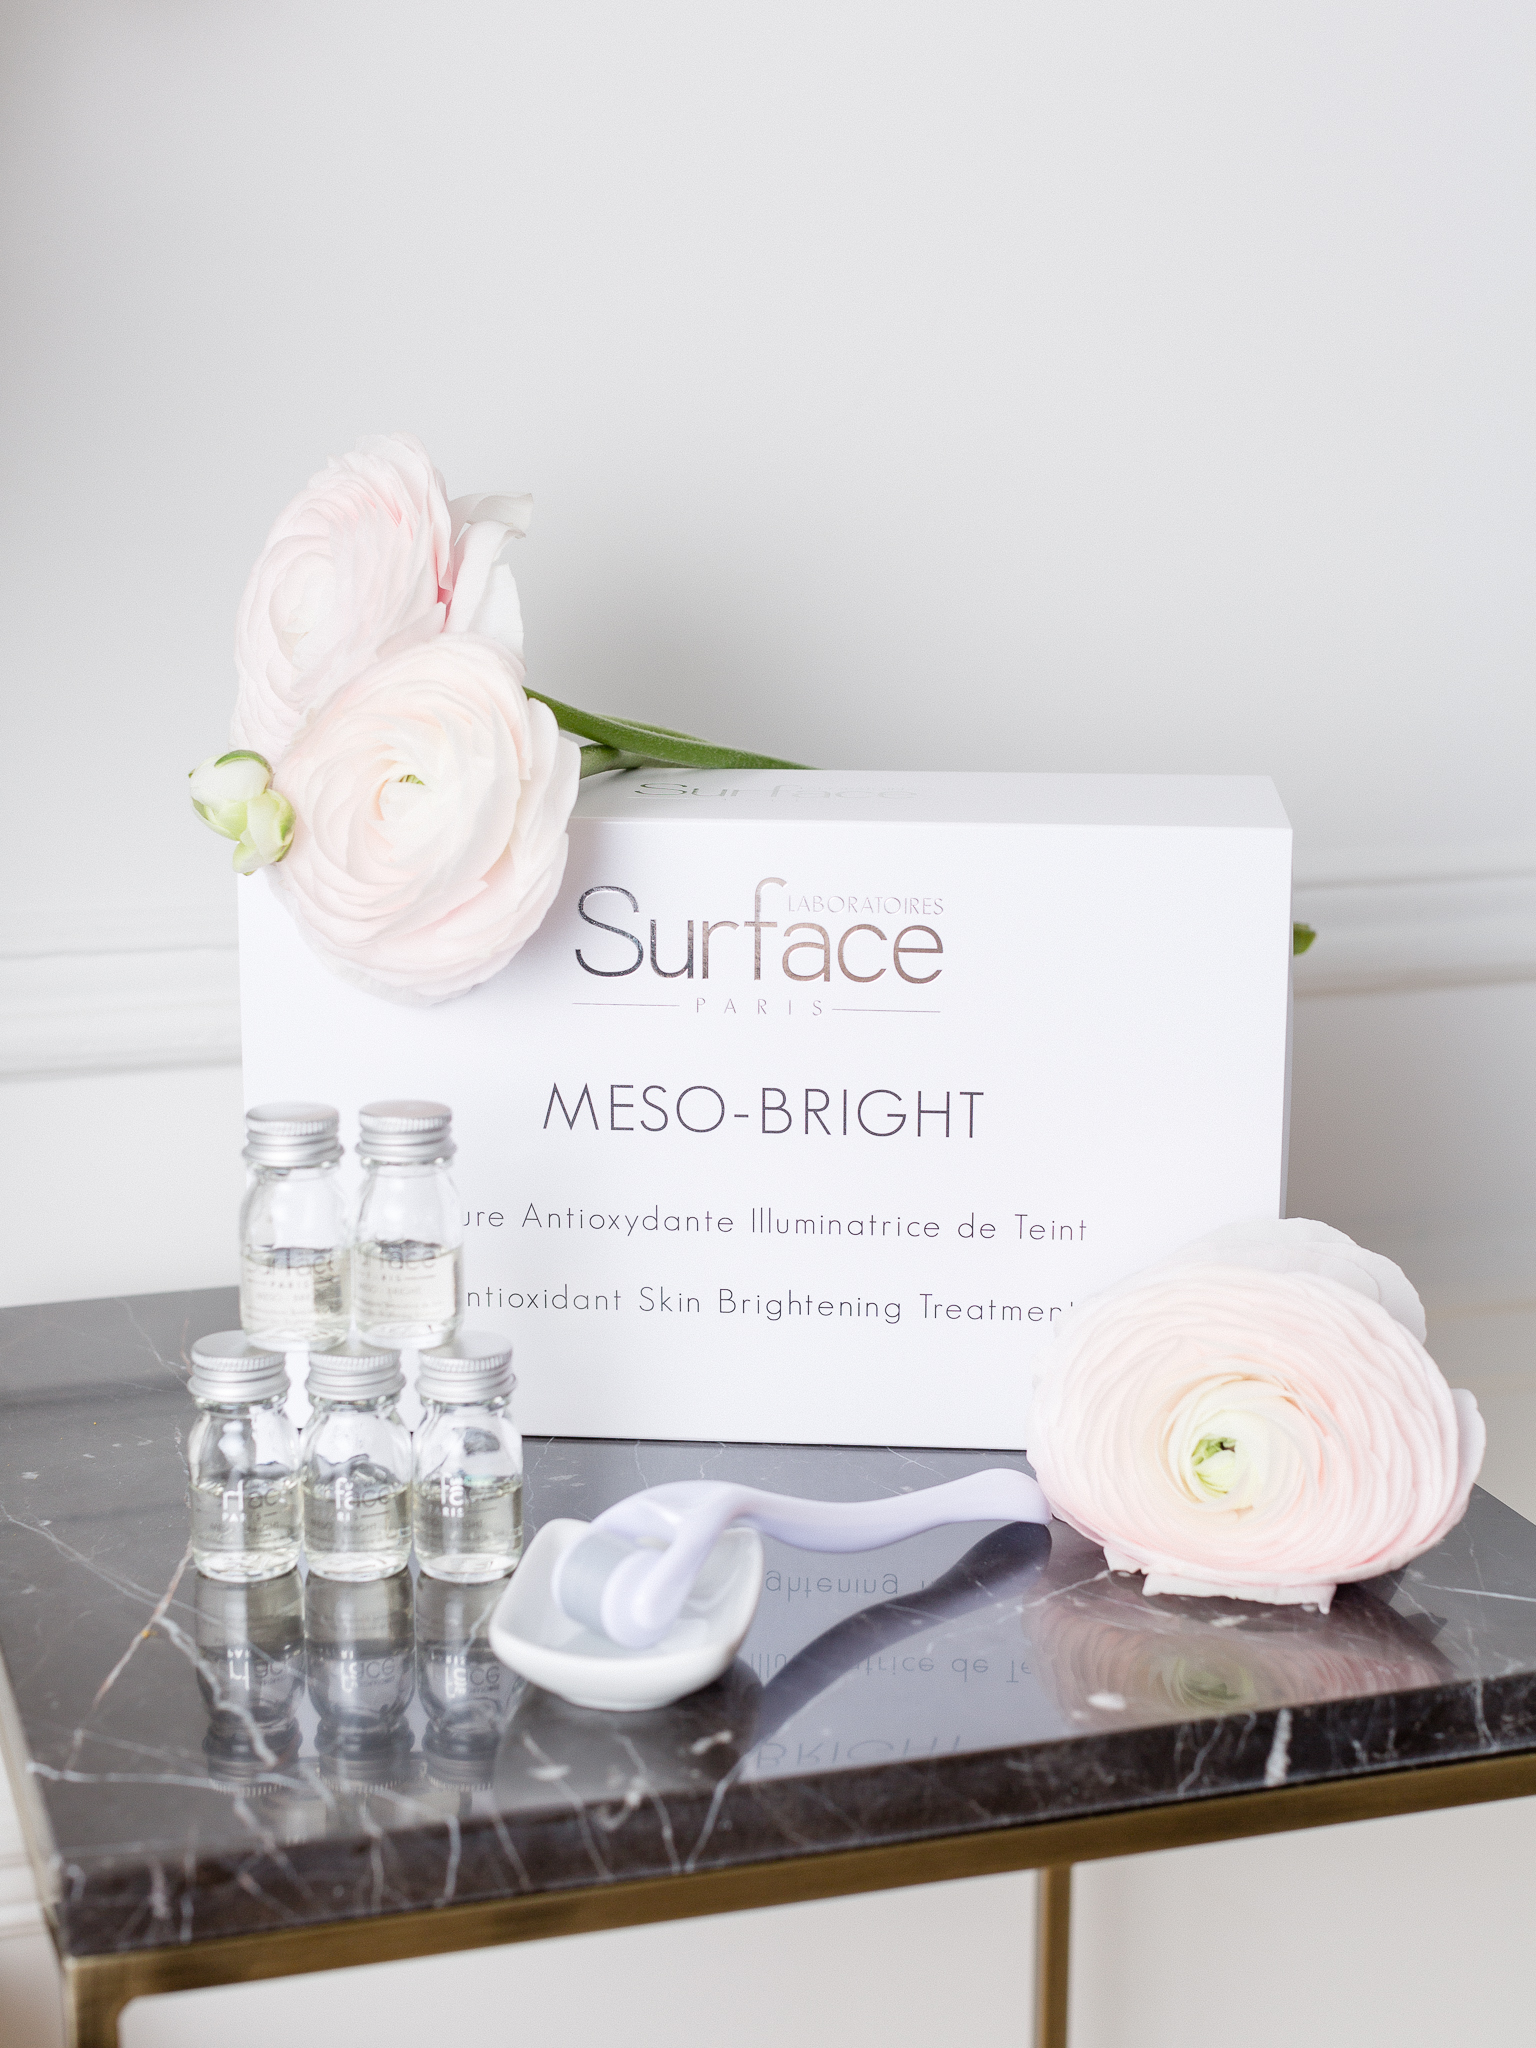 Surface Paris At Home Mesotherapy Meso Bright